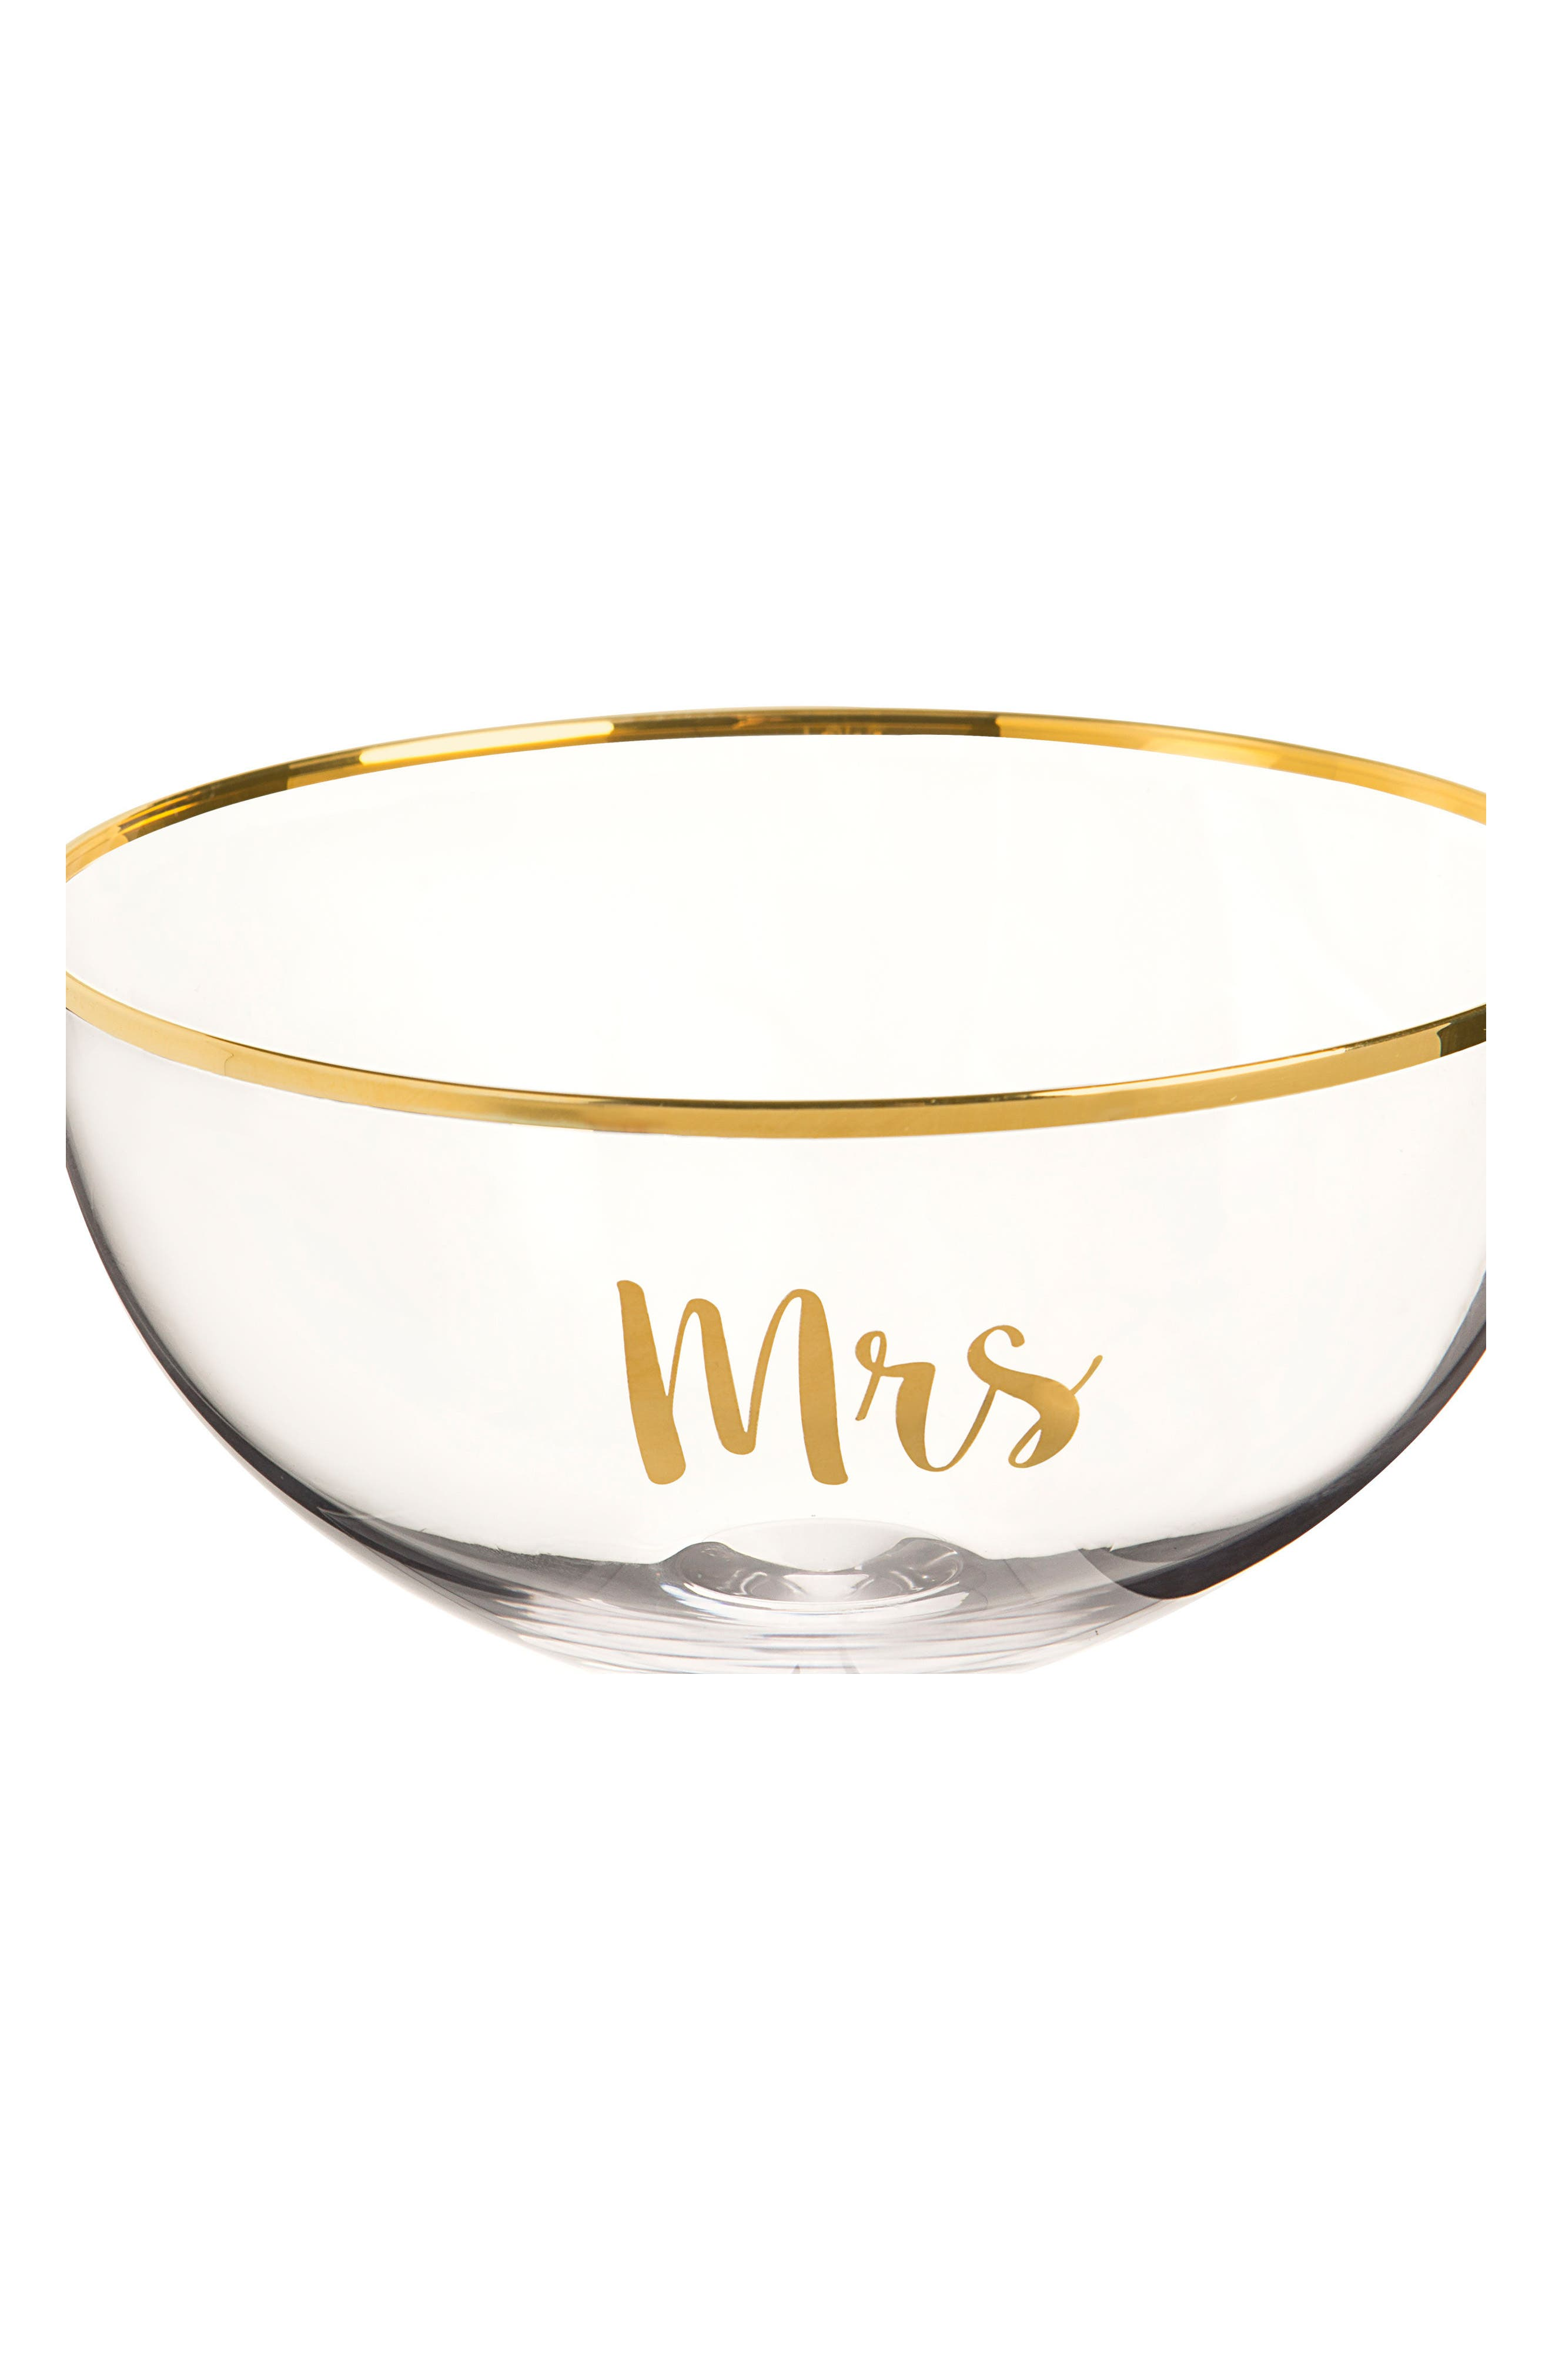 Mr. & Mrs. Set of 2 Champagne Coupe Toasting Glasses,                             Alternate thumbnail 8, color,                             710